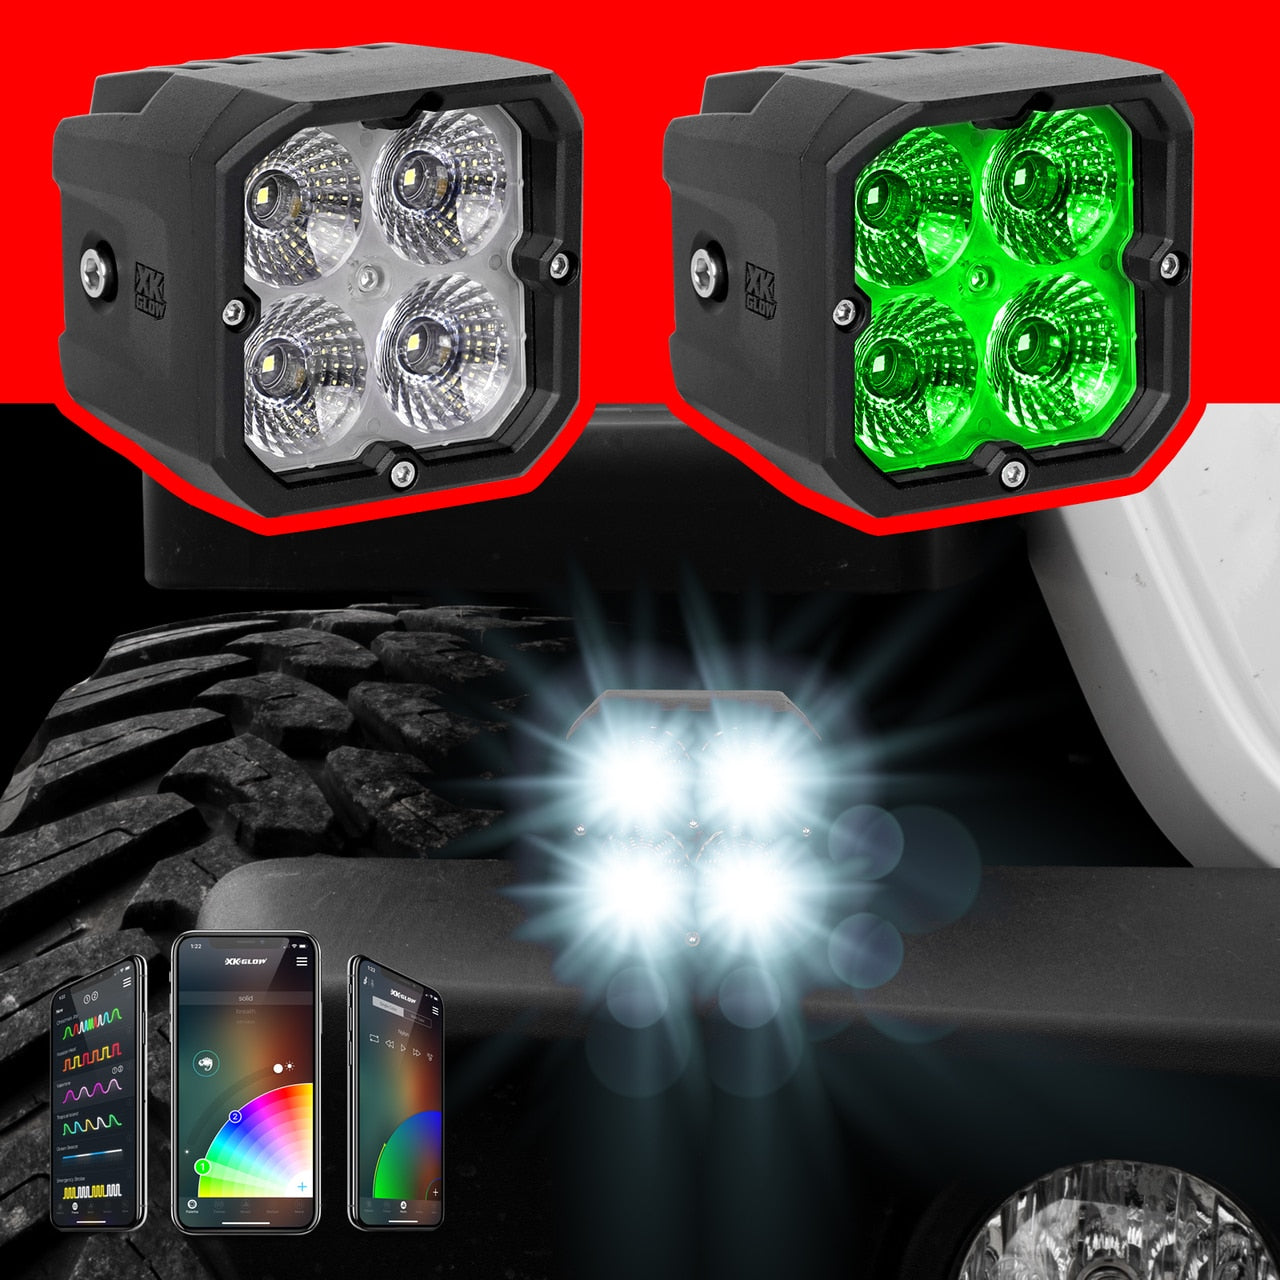 *PRE-ORDER* 2 Piece C3 SAE Cube Light Kit with XKChrome Smartphone App